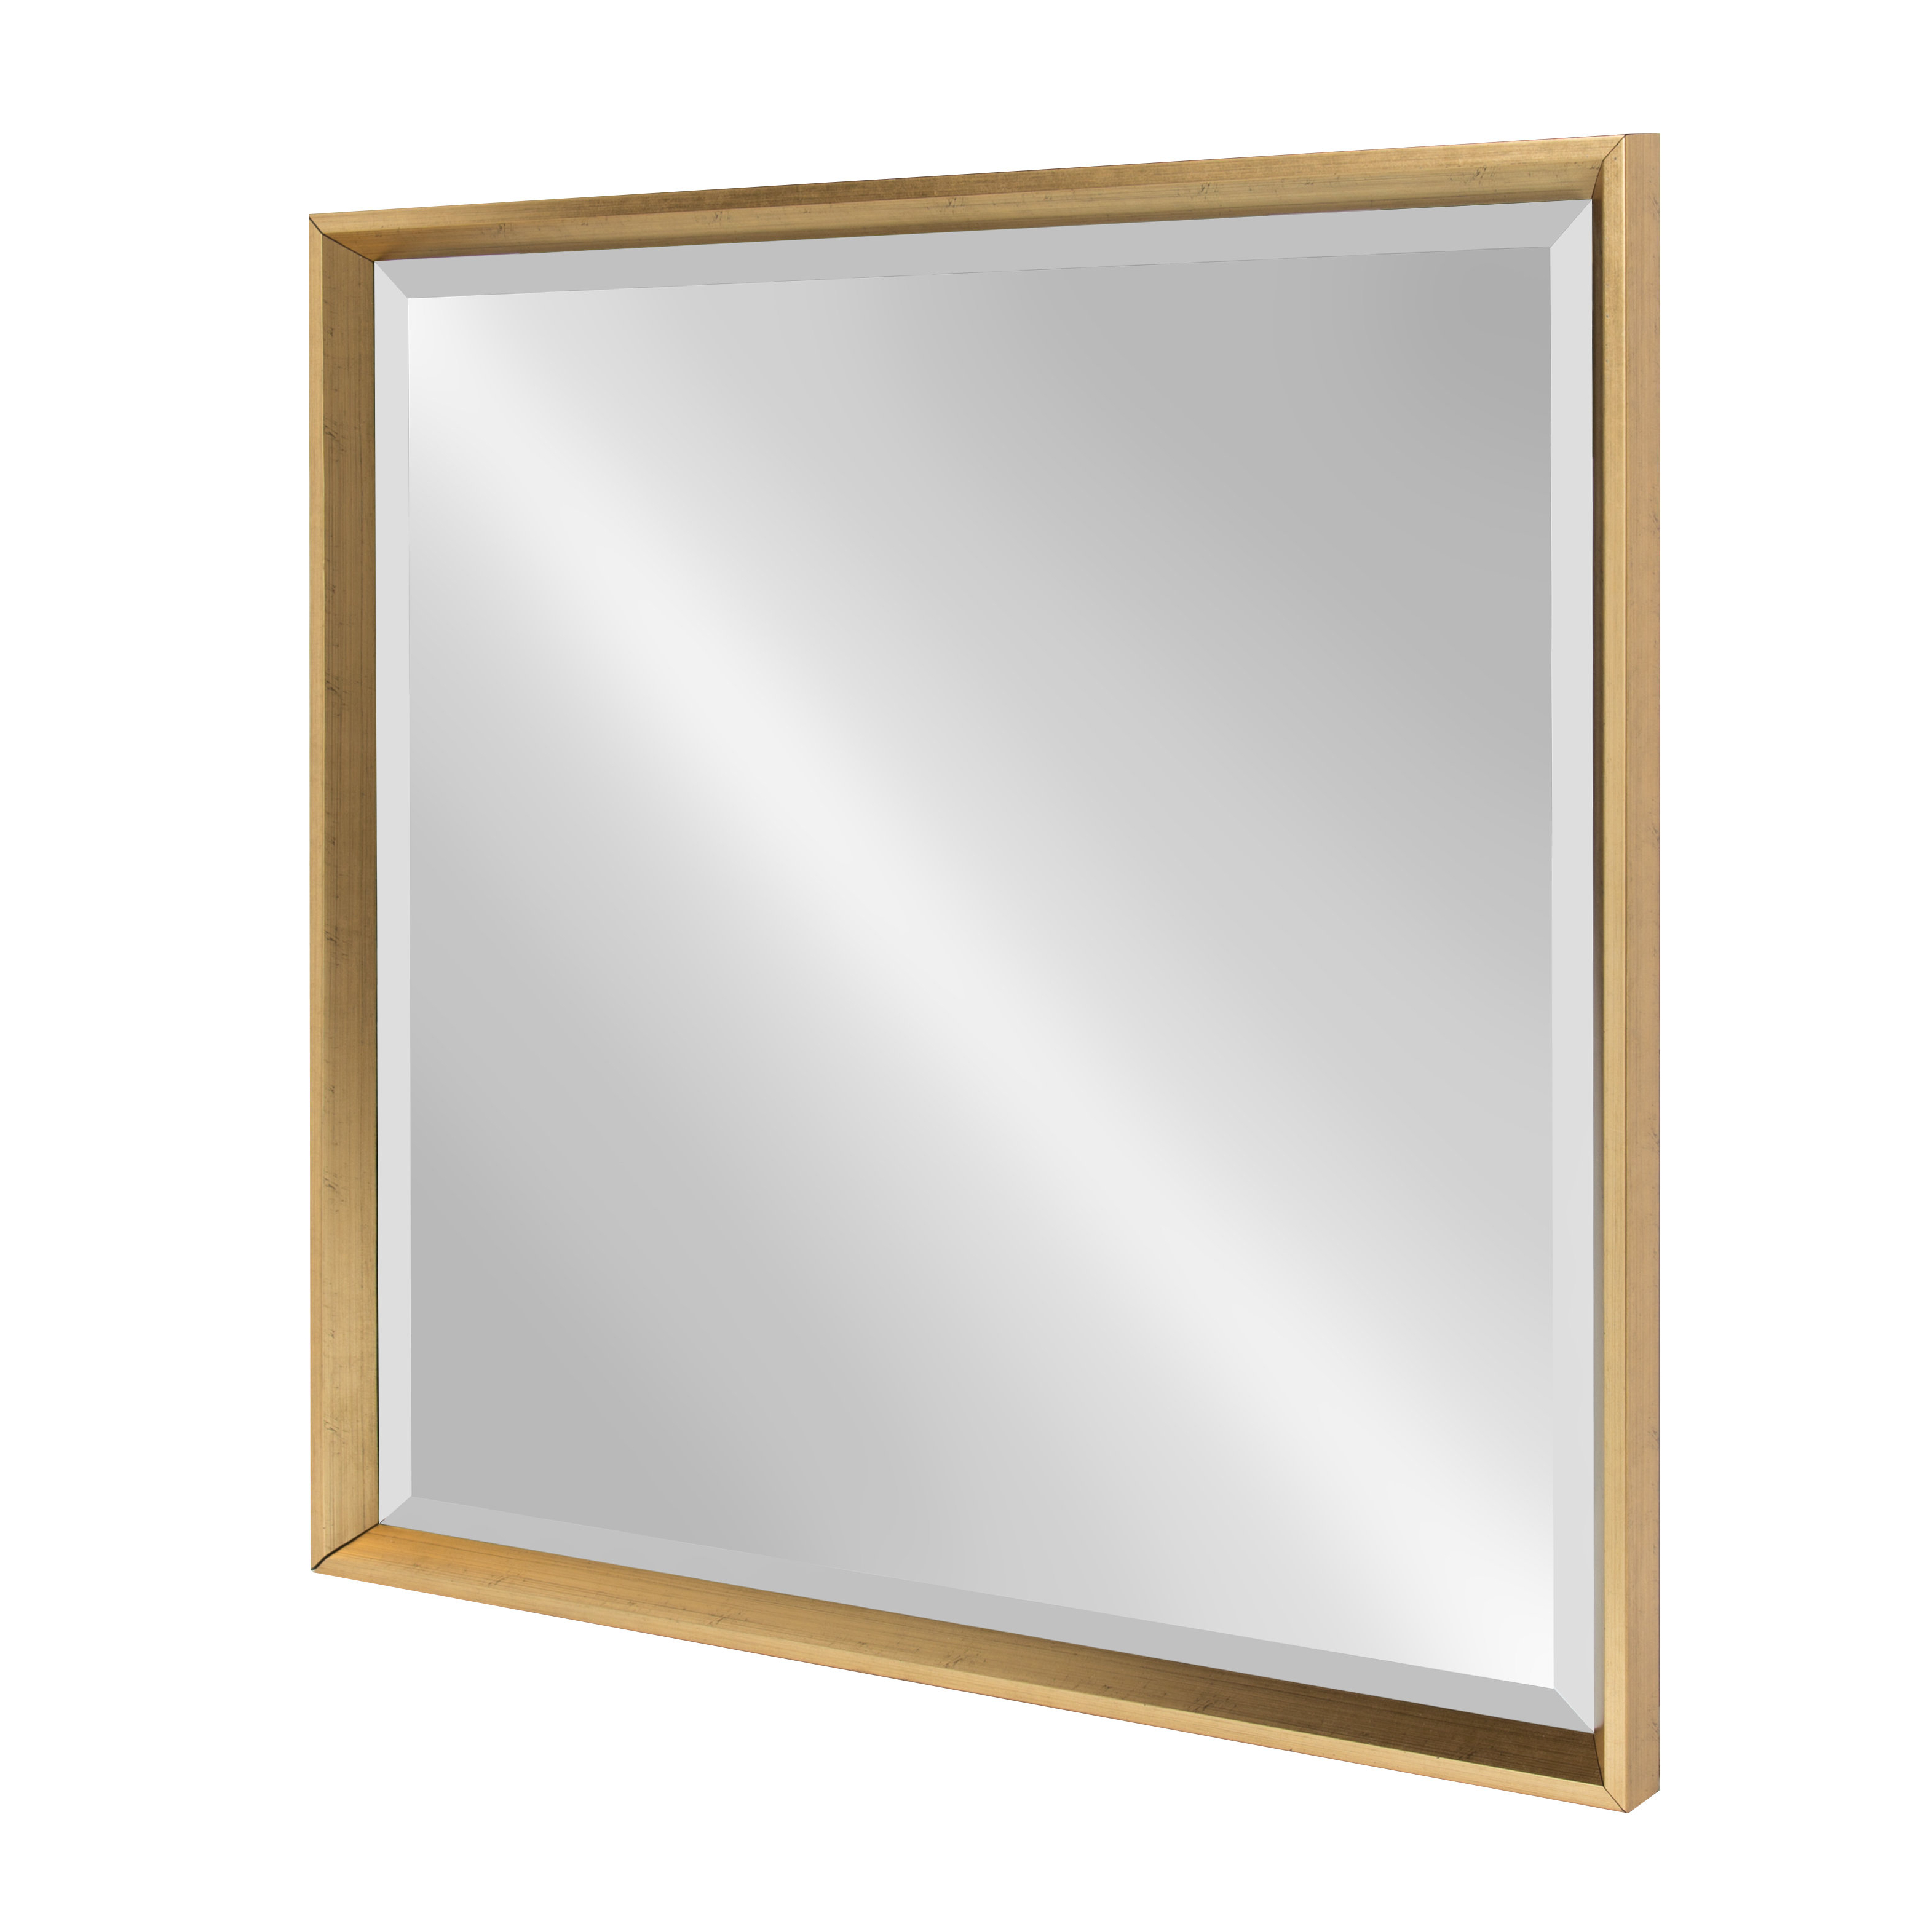 Well Known Sundown Framed Glam Beveled Accent Mirror For Glam Beveled Accent Mirrors (View 7 of 20)